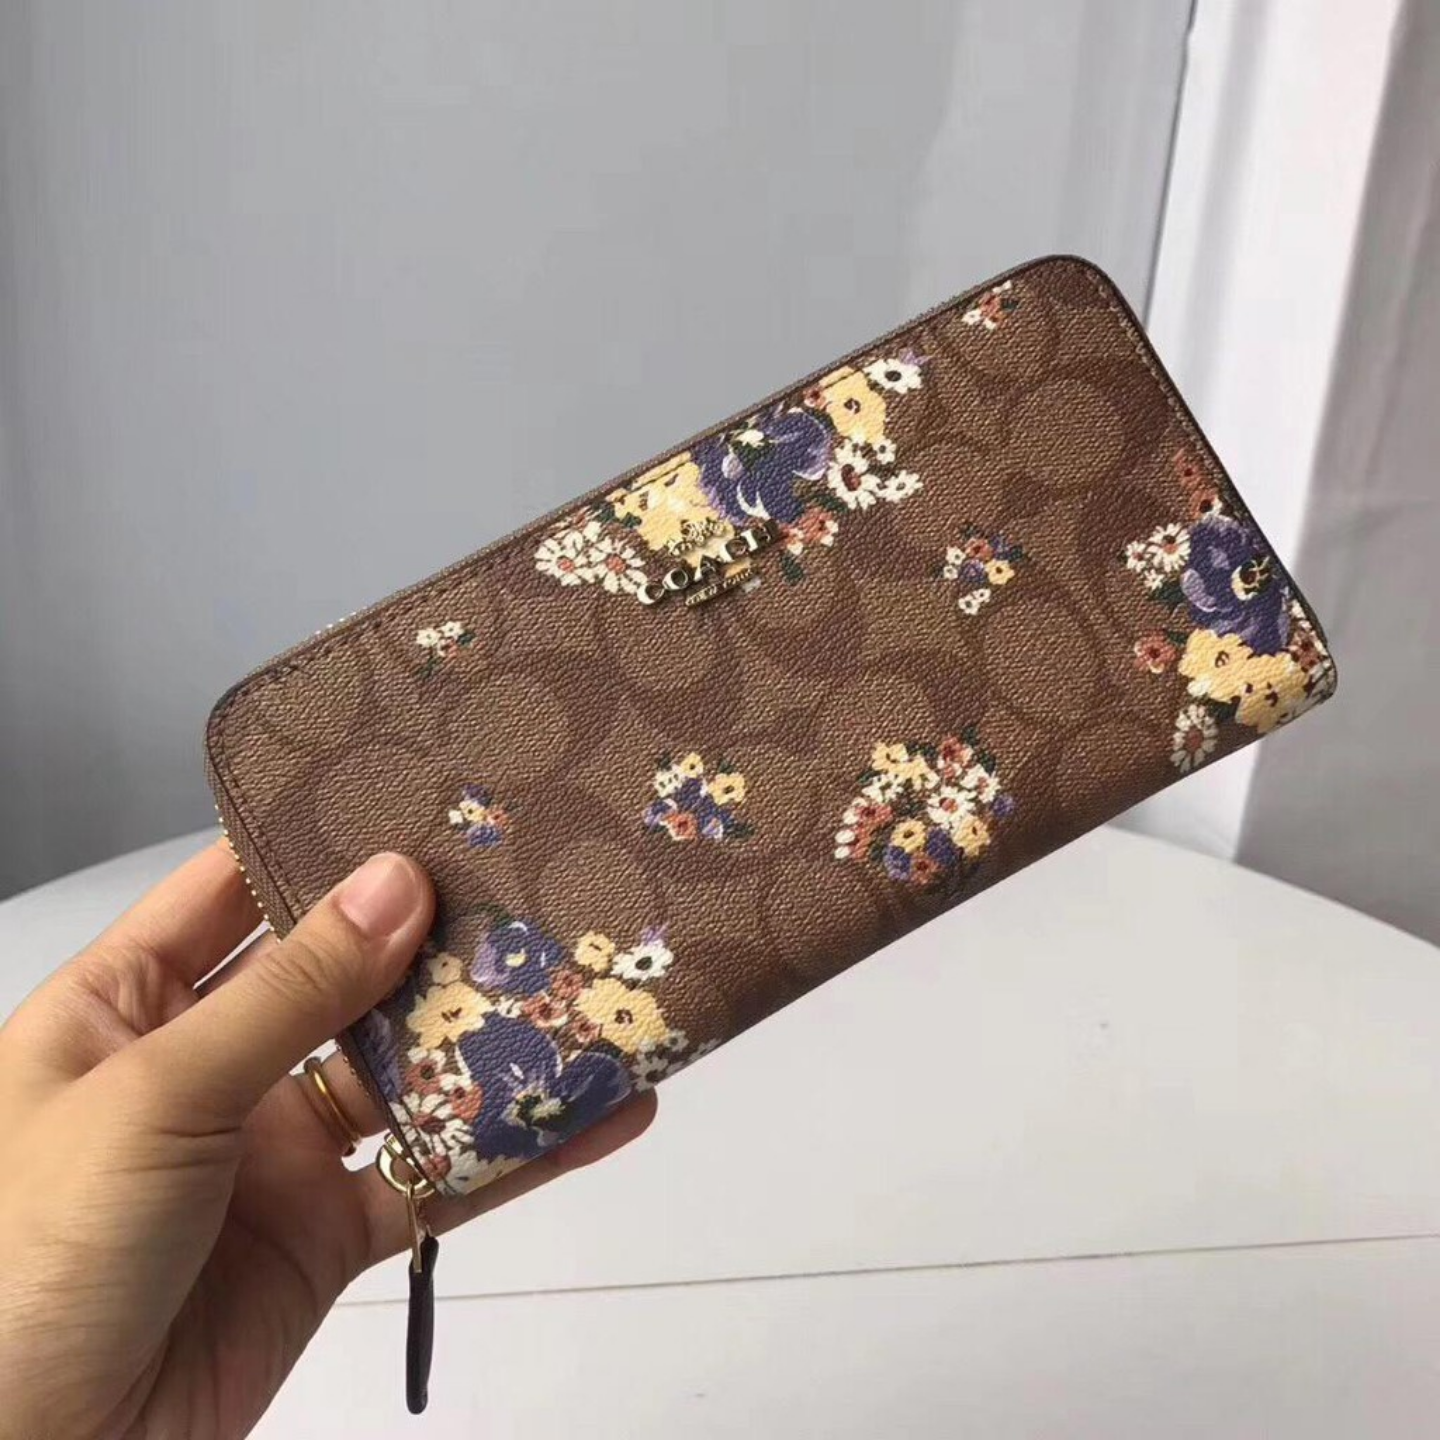 Coachs new 31572 printed lady Zipper Wallet